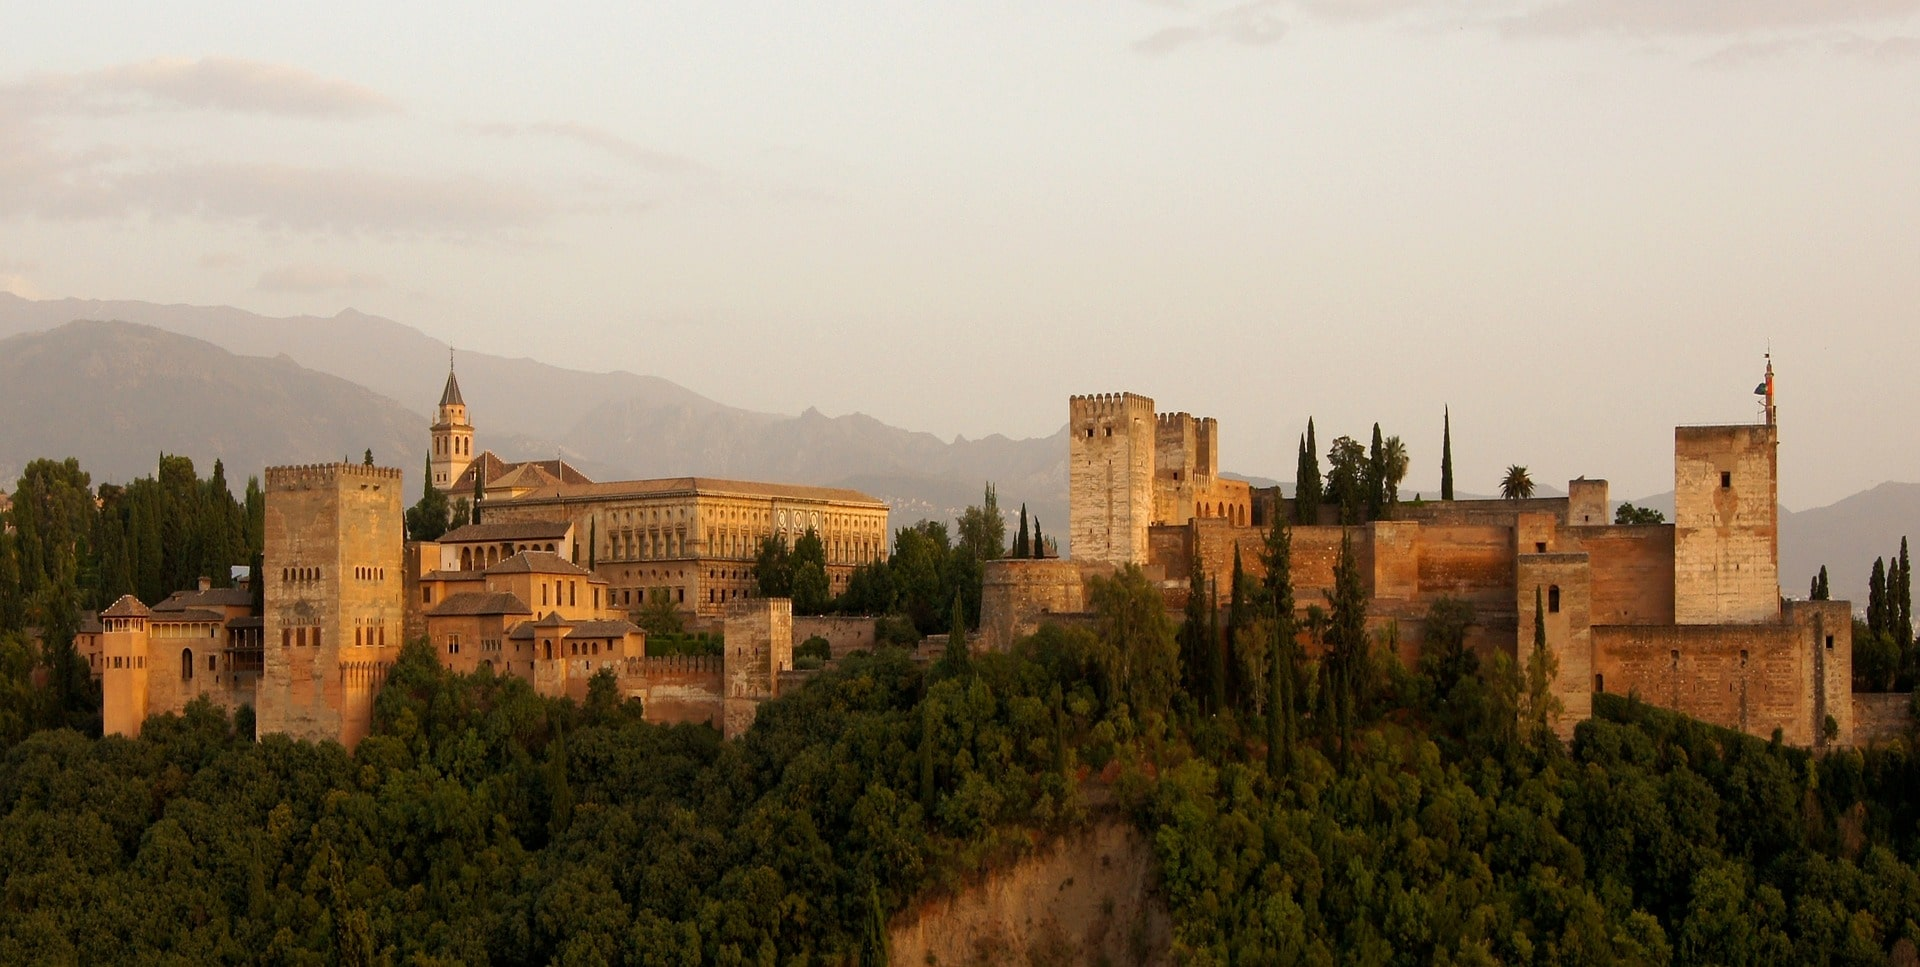 Alhambra in Grenada is one of the most breathtaking places to visit in Spain